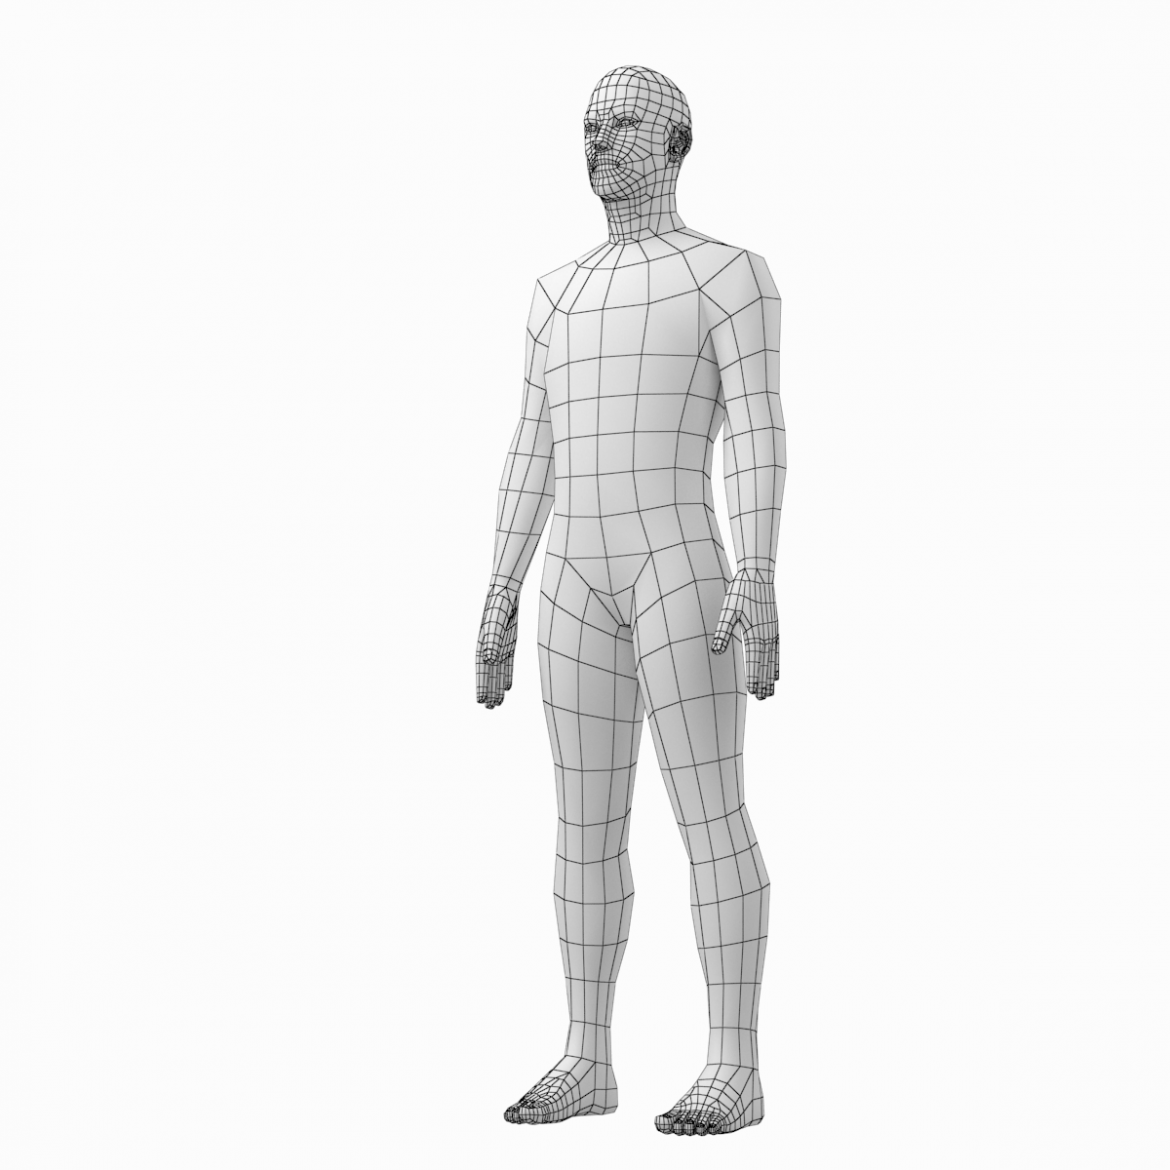 female and male deailed base mesh in rest pose 3d model 3ds max dxf dwg fbx c4d dae ma mb  obj 301301